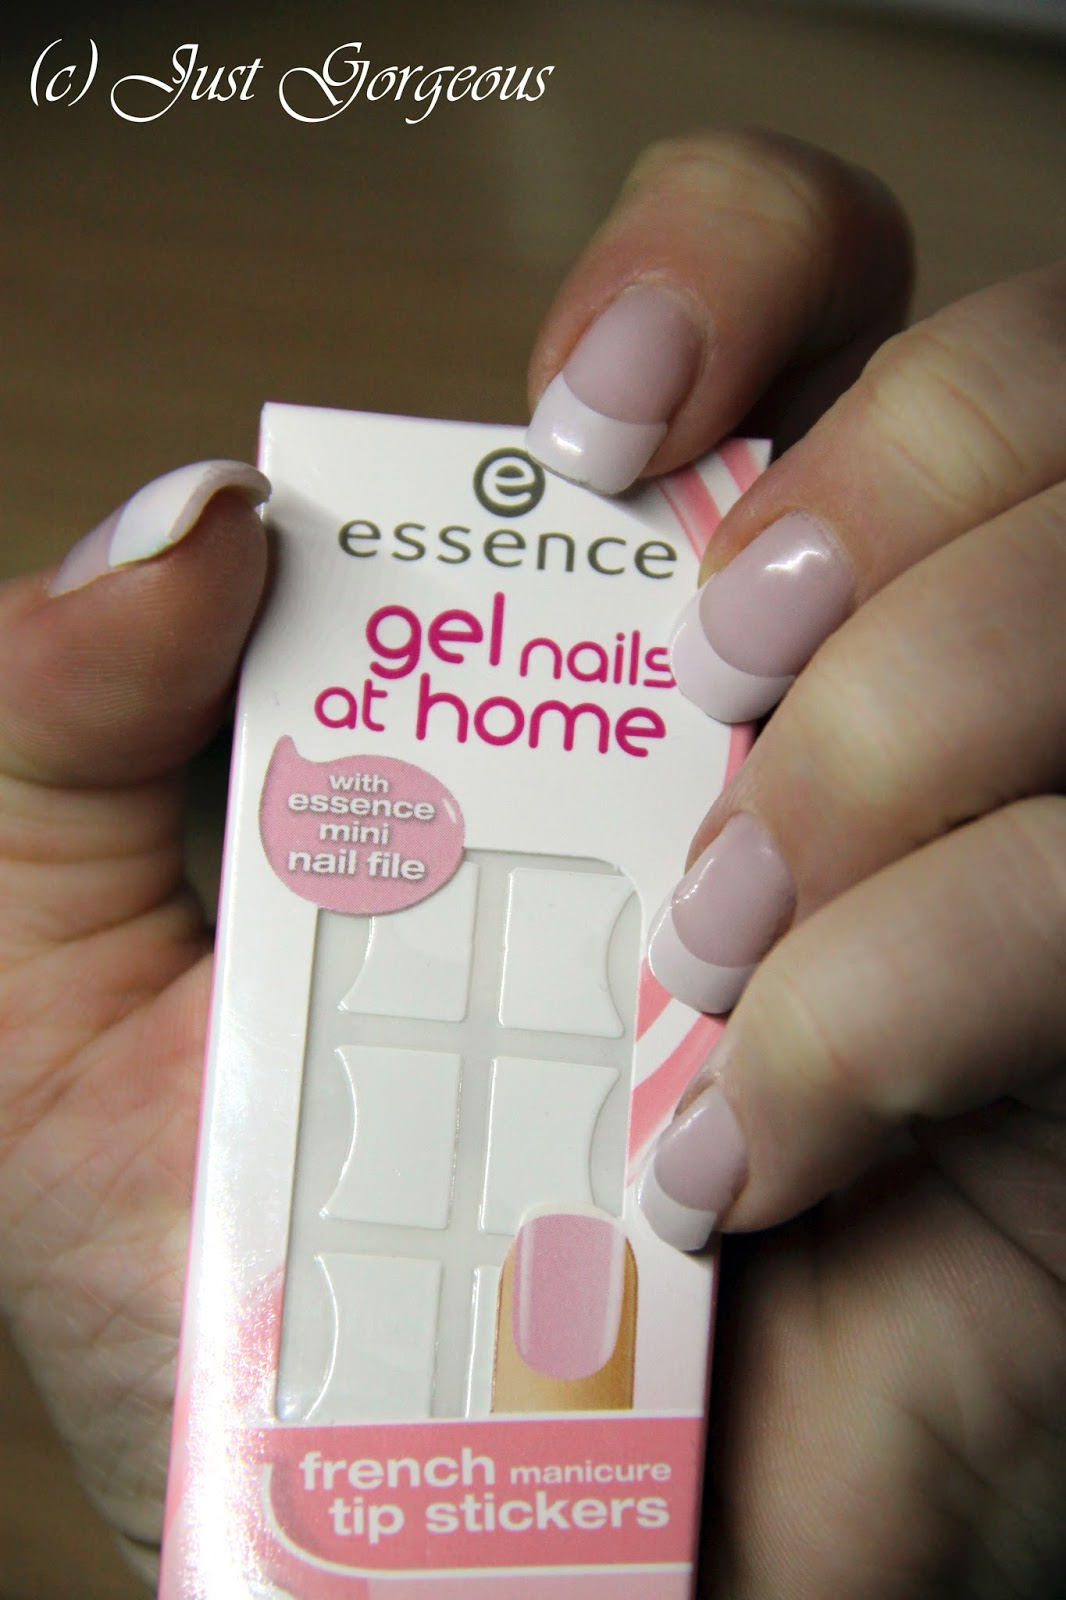 essence gel nails at home tips nail ftempo. Black Bedroom Furniture Sets. Home Design Ideas